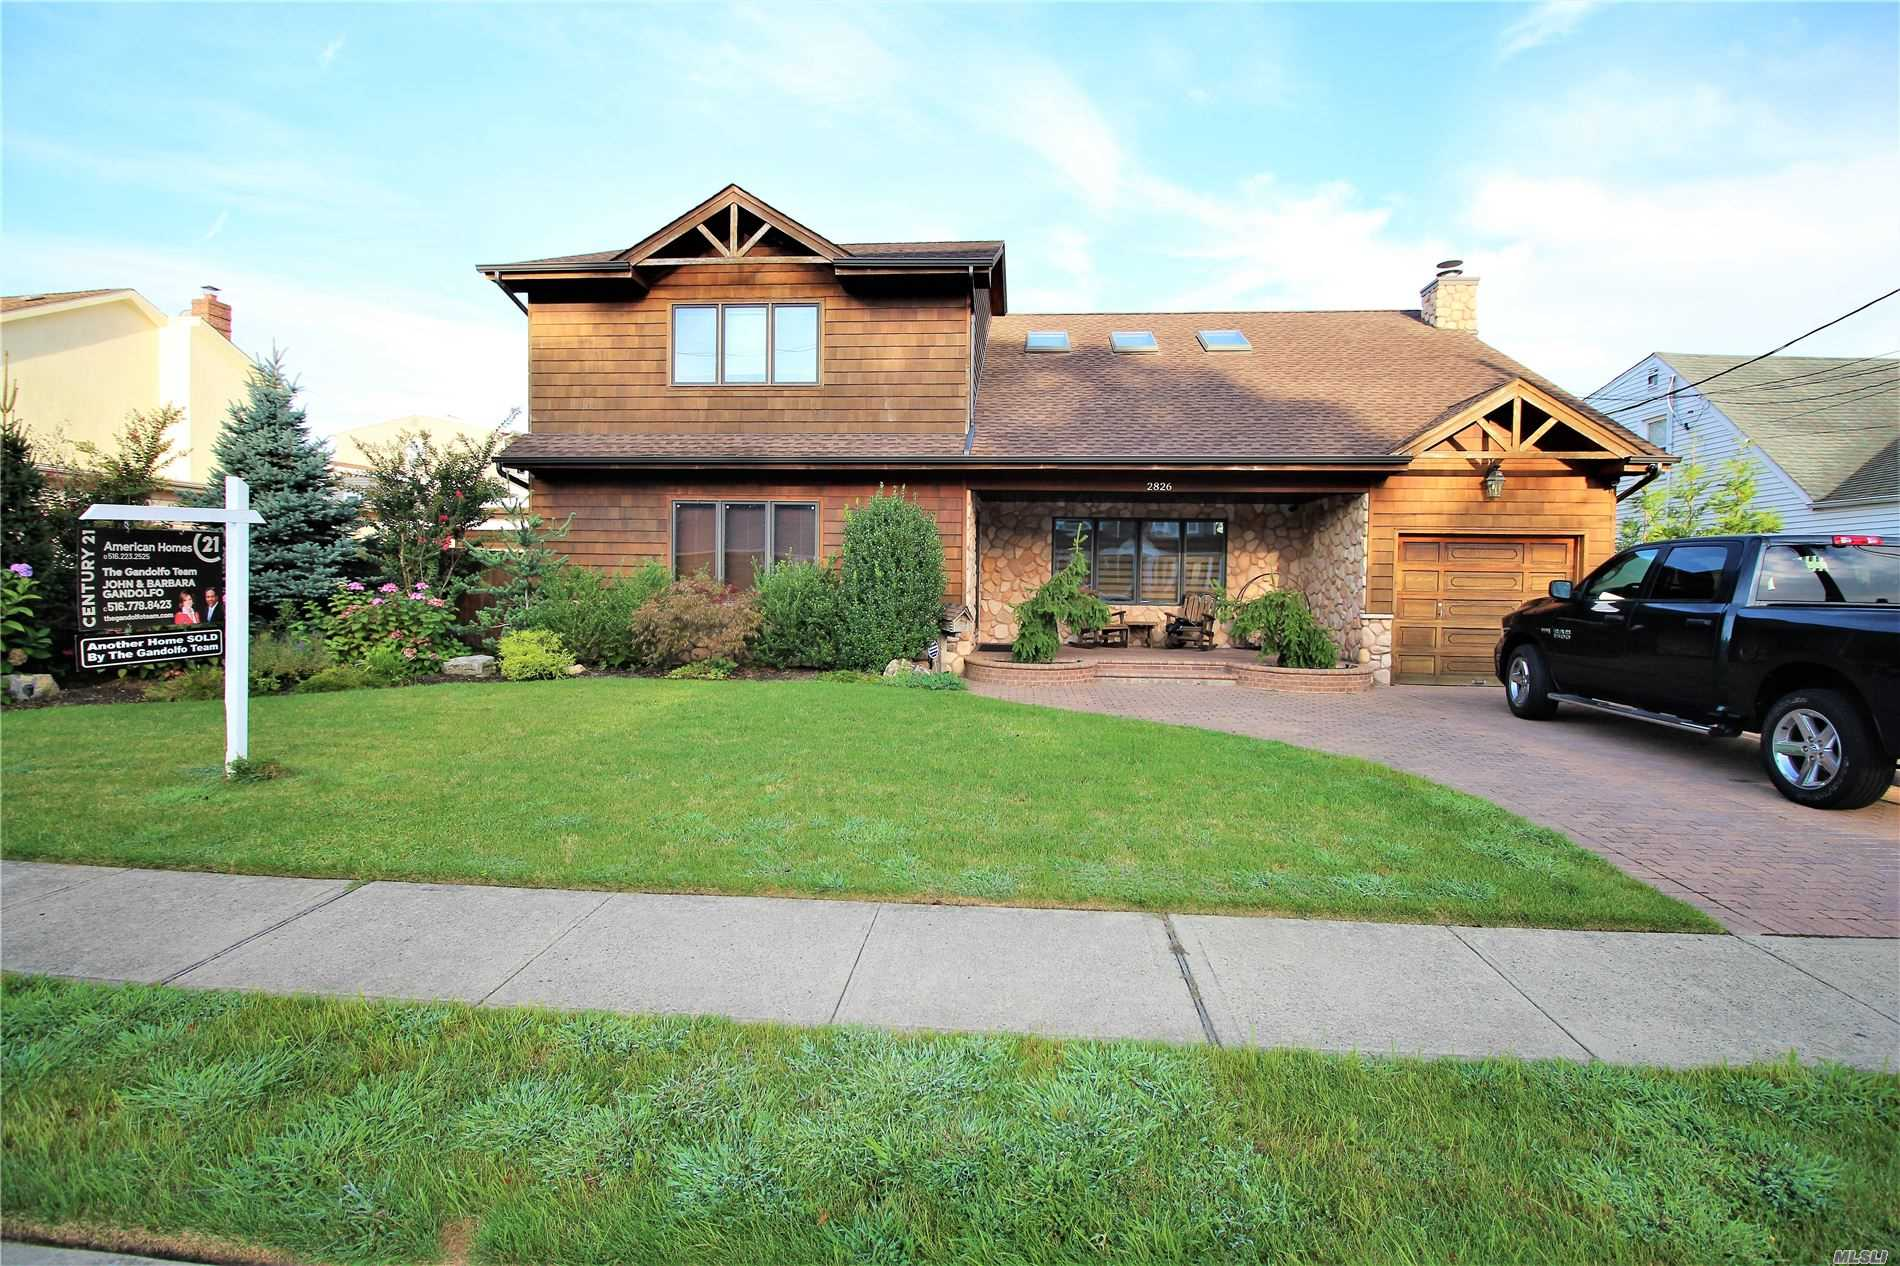 One Of A Kind Custom Built Builders Home, 4 Bedroom, 2.5 Bath Colonial On 70X302 Property In Mill River Section. Expansive Open Floor Plan With Vaulted 20' Ceiling Features Large Living Room, Great Room & Den W/Wood Burning Fireplace. Formal Dining Room & Tremendous Custom Eat In Kitchen W/Over-Sized Island. All Season Room, Master Suite W/Private Bath, 3 Large Bedrooms & Loft Office Or 5th Br, .18X36 Heated In Ground Salt Water Ground Pool, Hot Tub, Pier & Dock On Mill River. Solar Panels, More